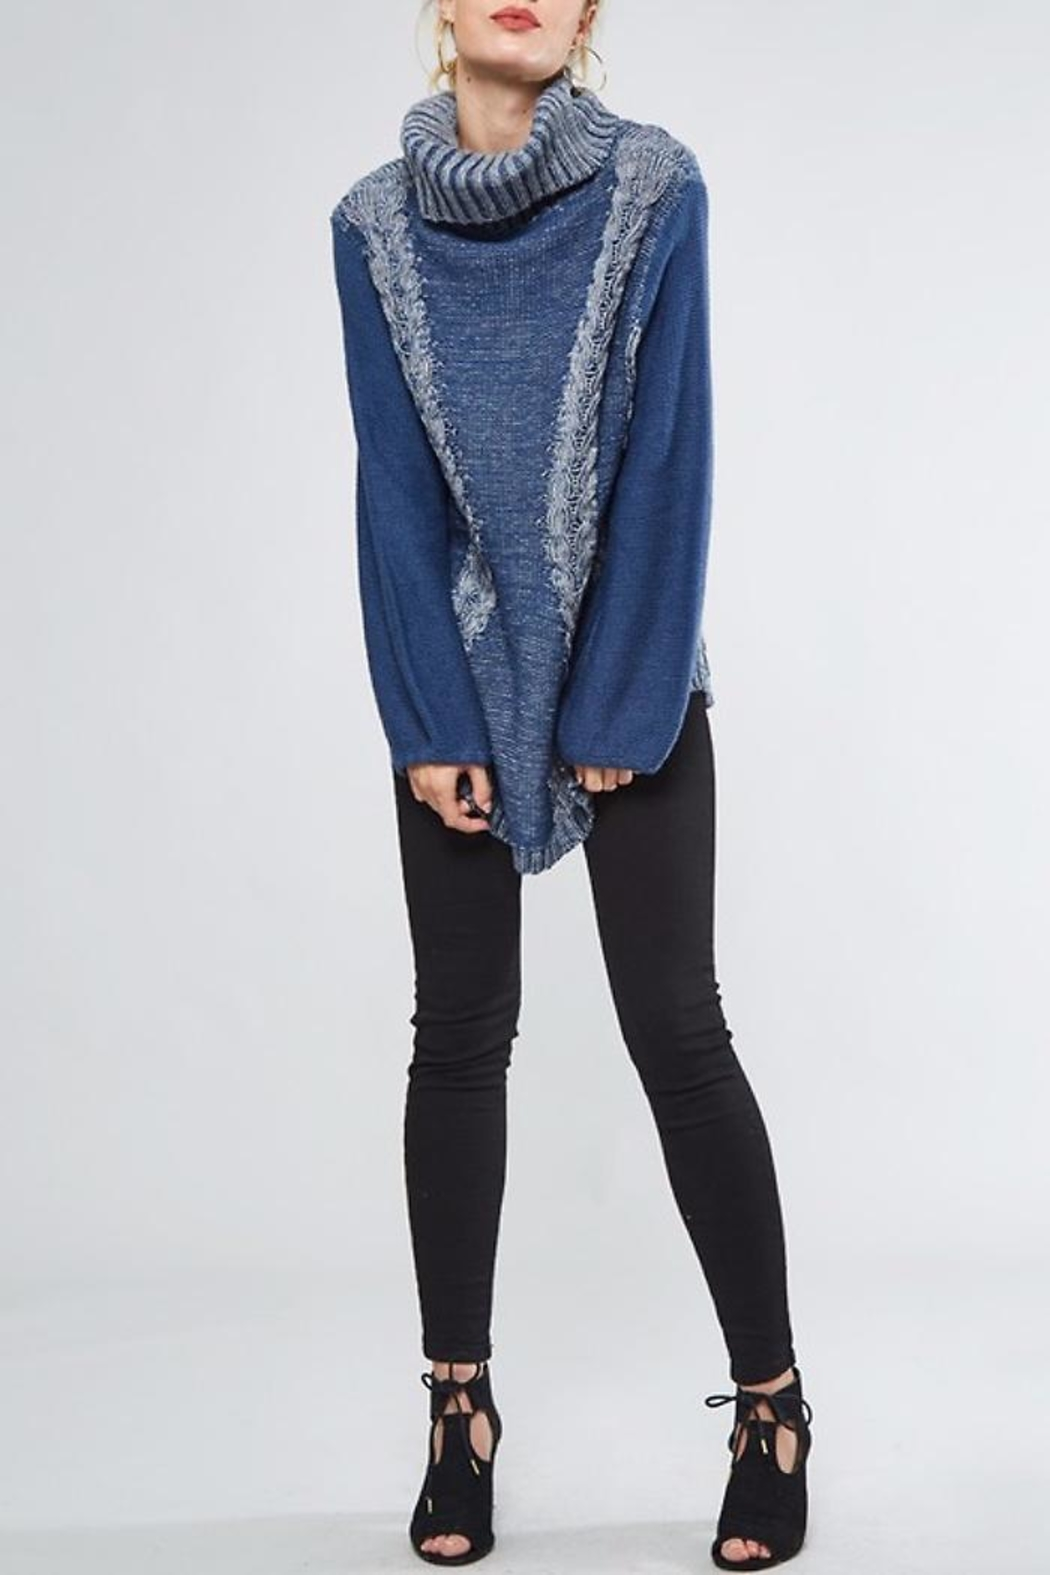 People Outfitter Heartened Blue Sweater - Front Full Image